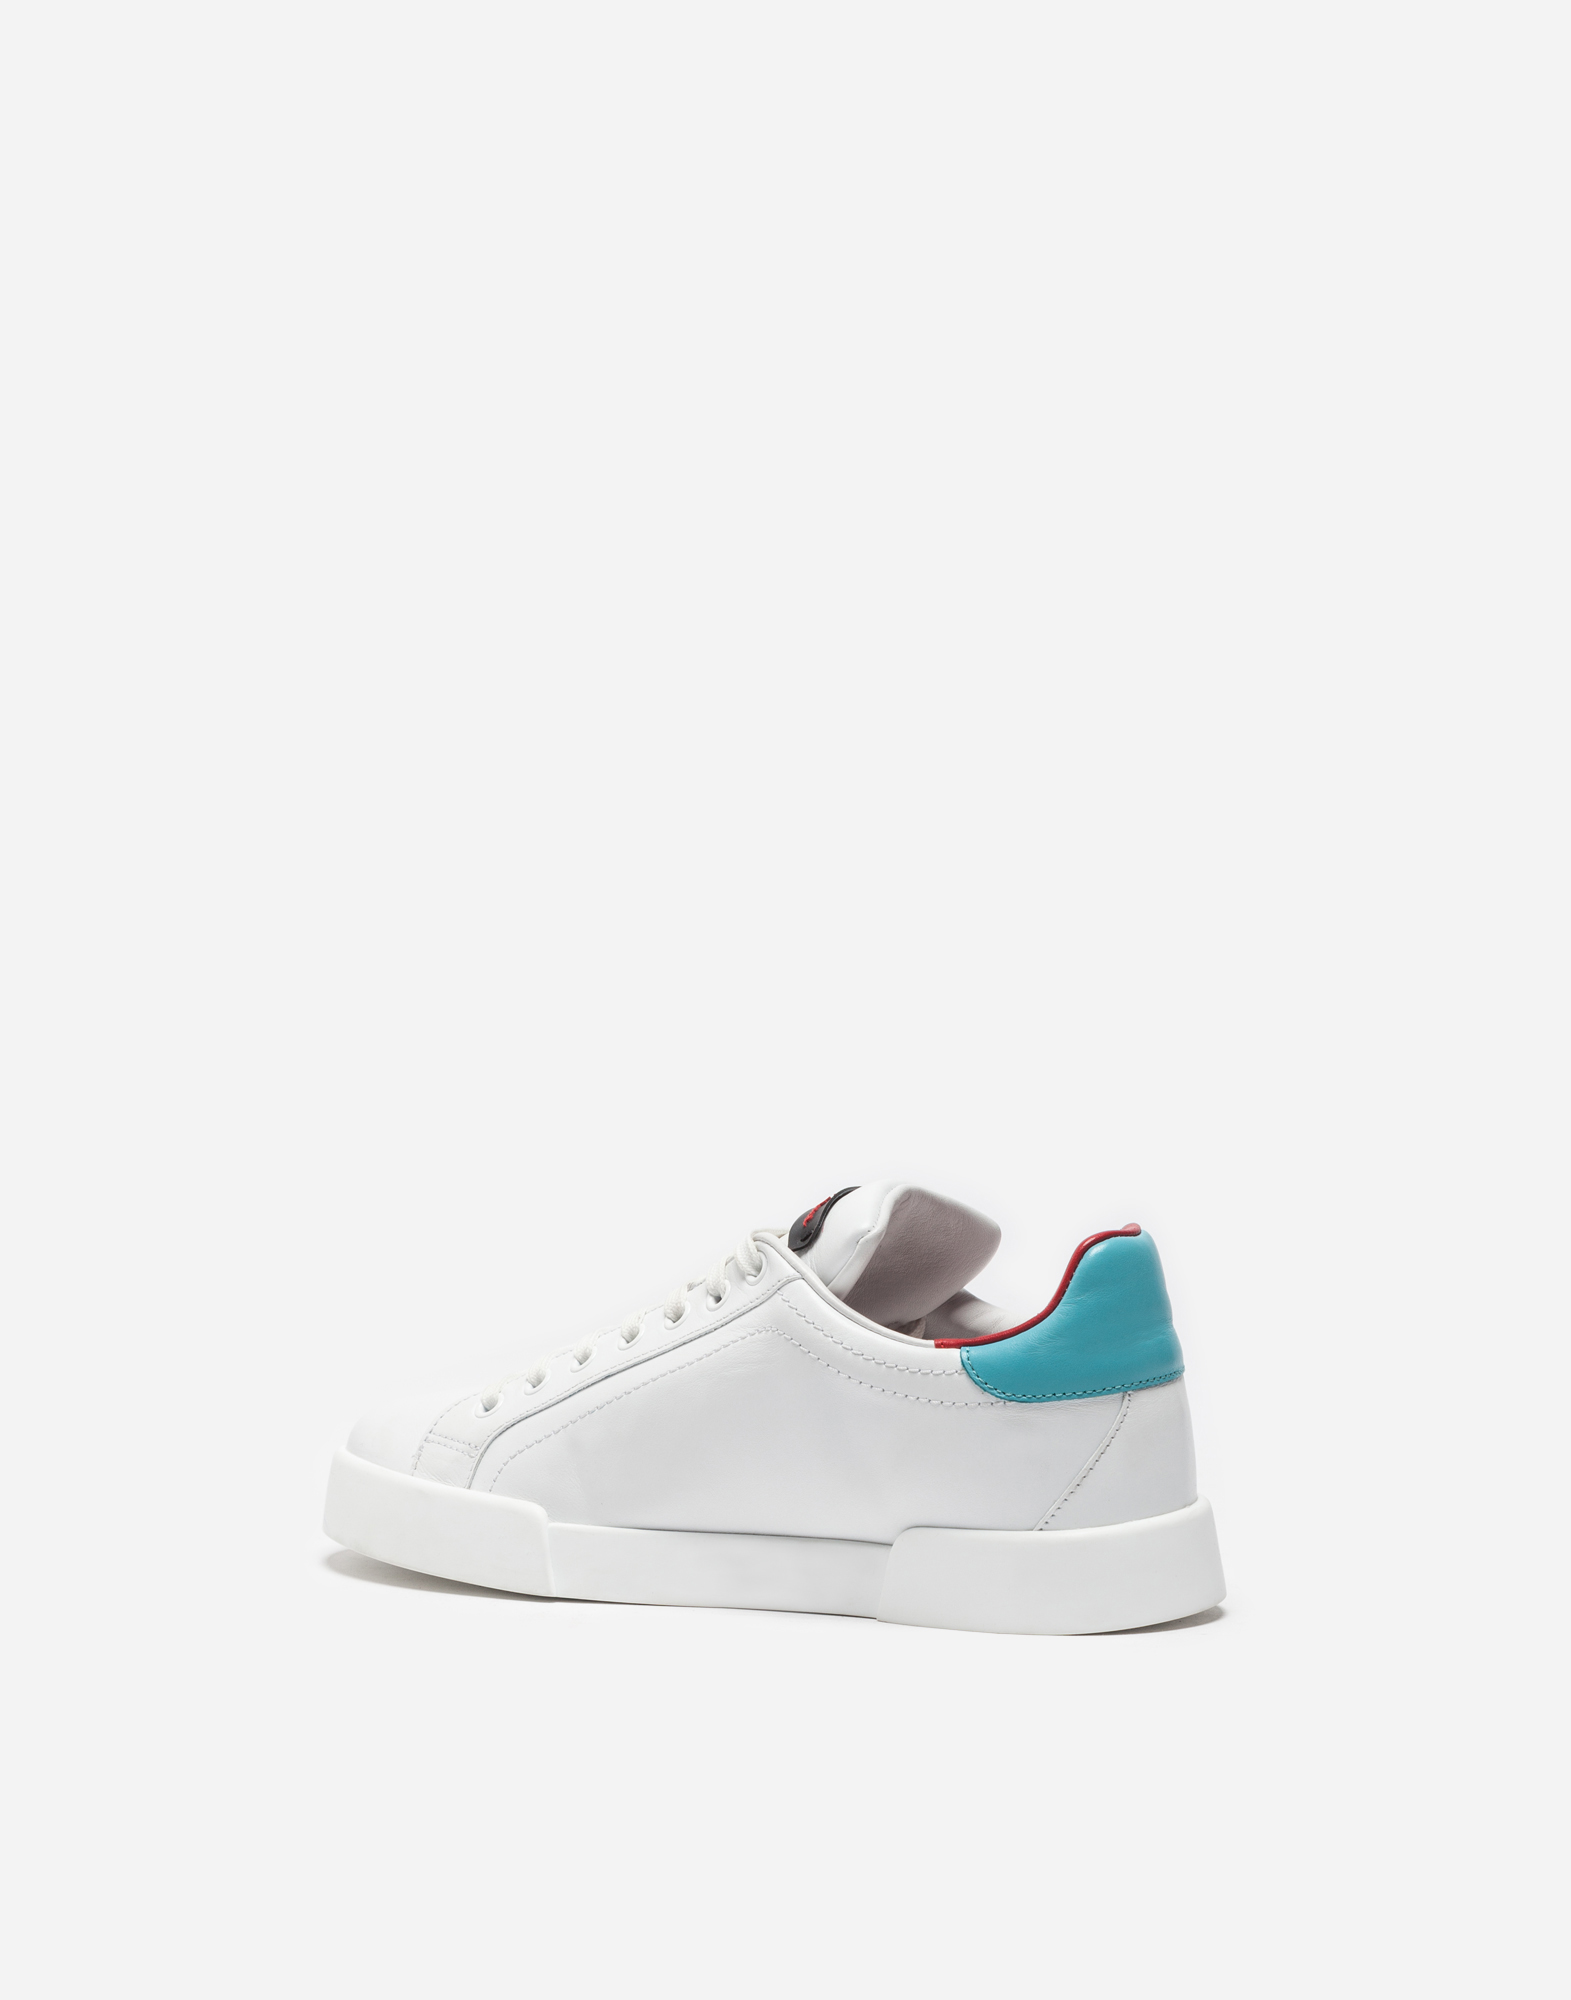 Dolce & Gabbana LEATHER PORTOFINO SNEAKERS WITH PATCH